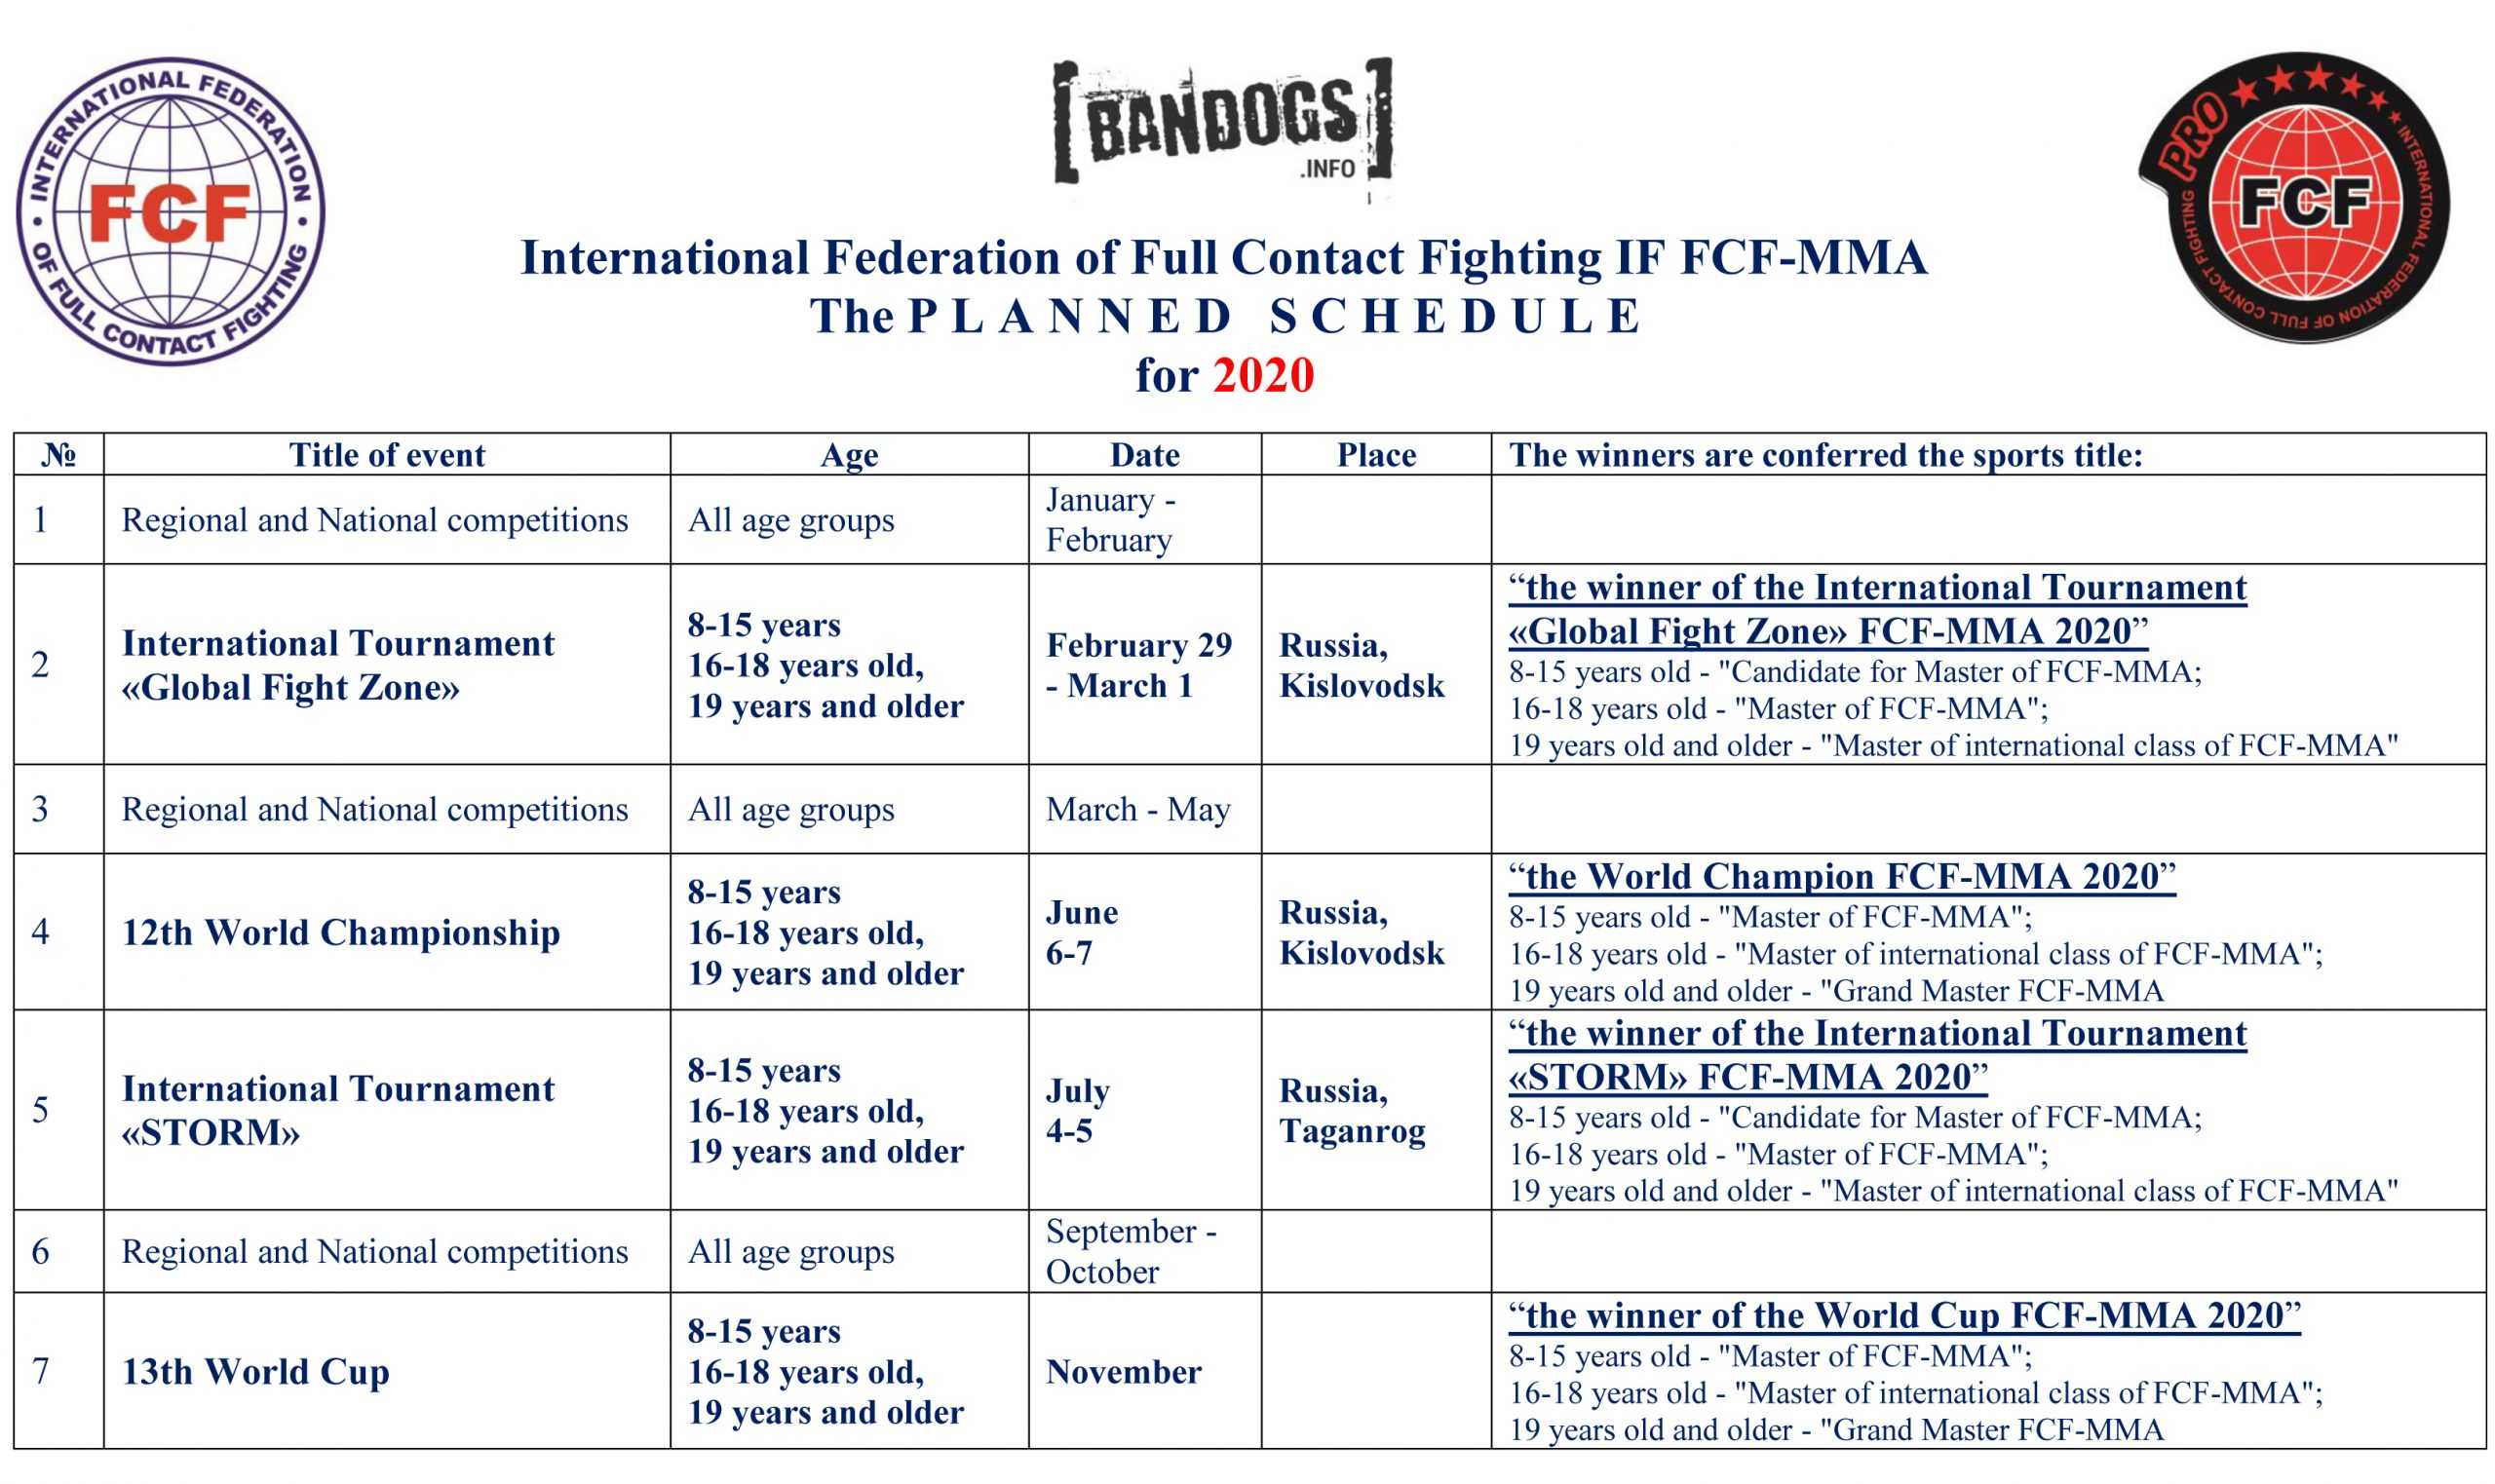 Planned Schedule IF FCF-MMA for 2020